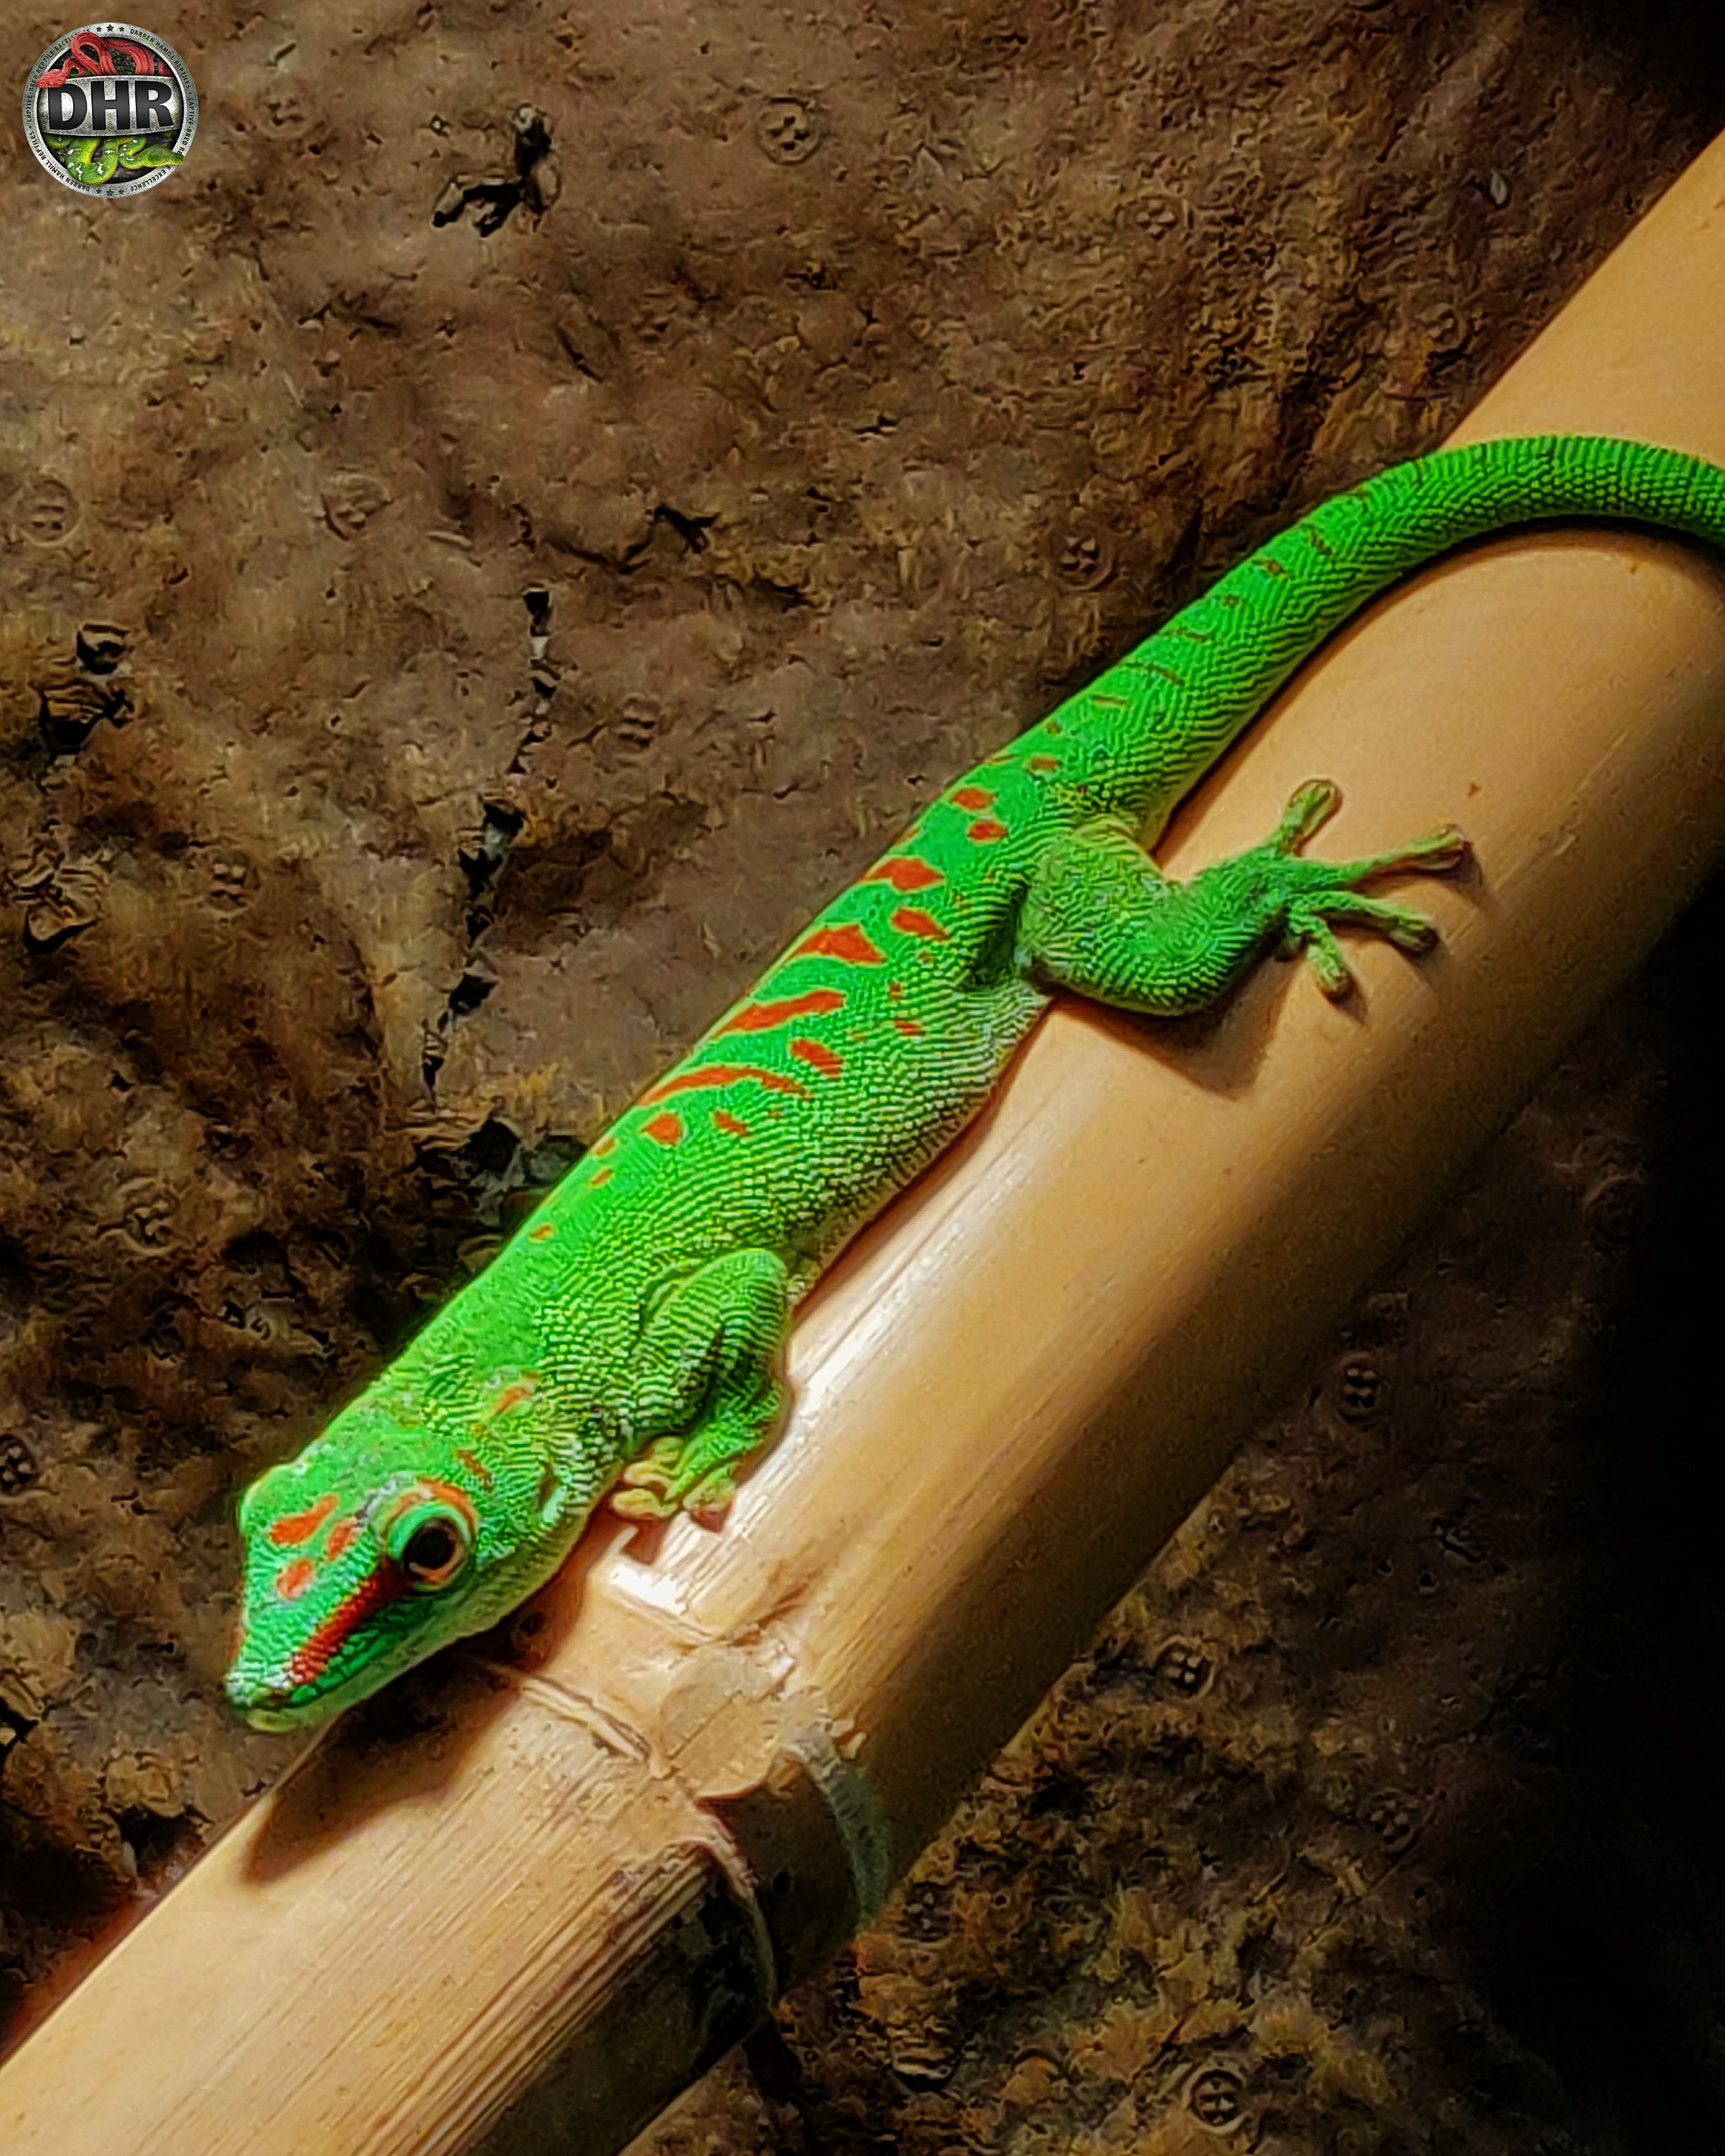 One of our beautiful adult male Giant Day Geckos